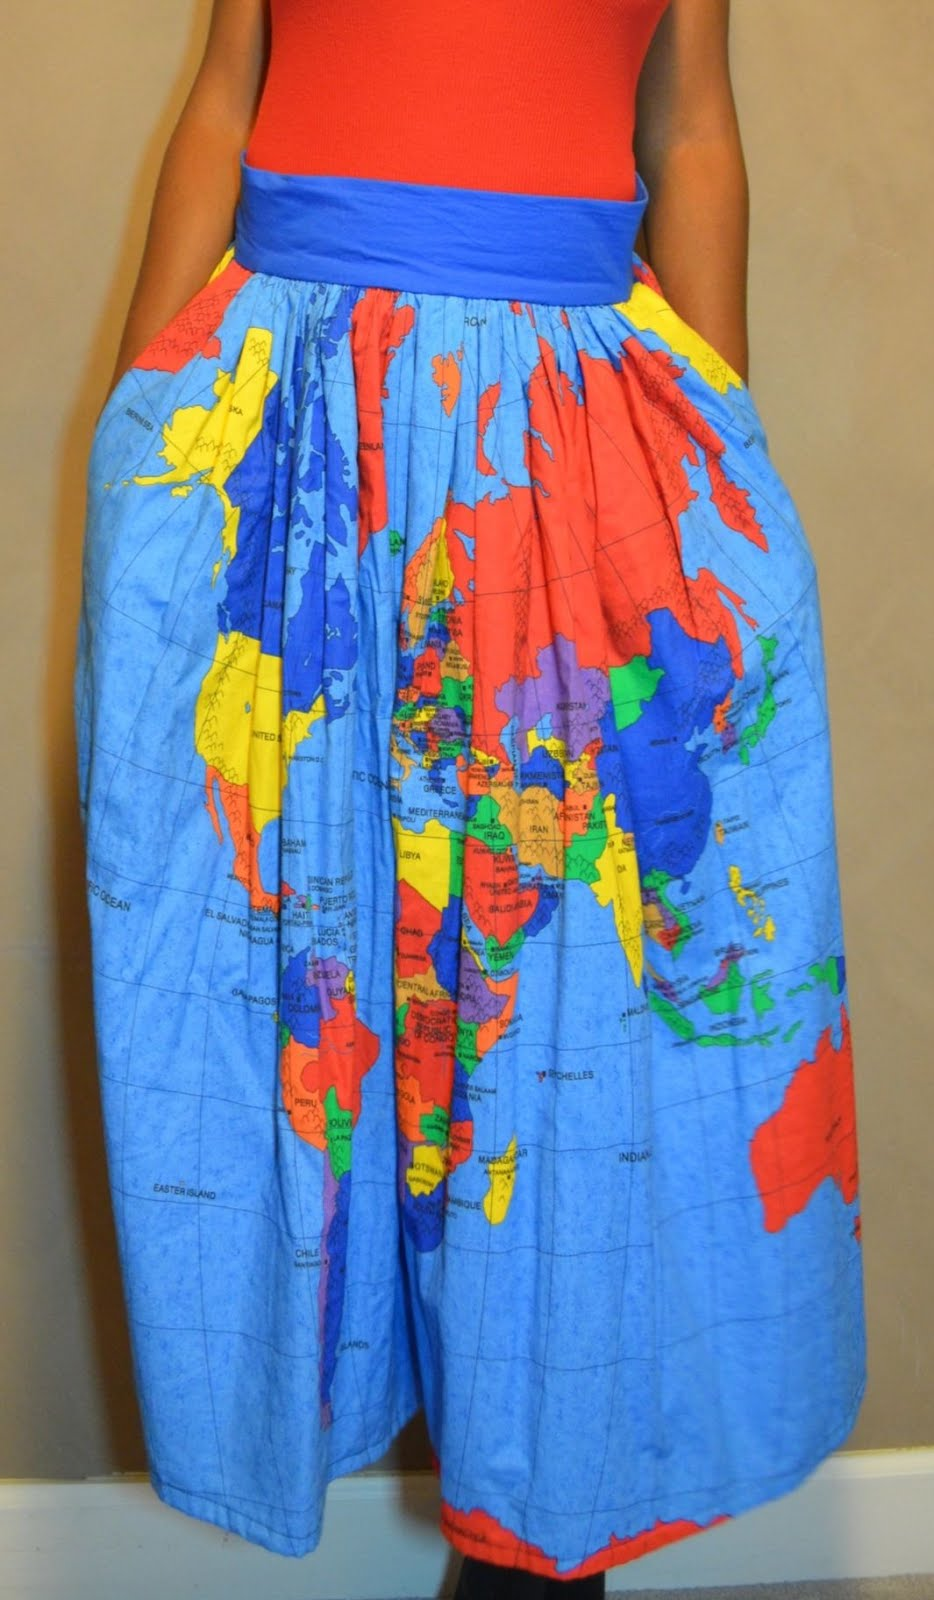 Get Your Limited Edition Map Of The World Skirt The Daily Affair